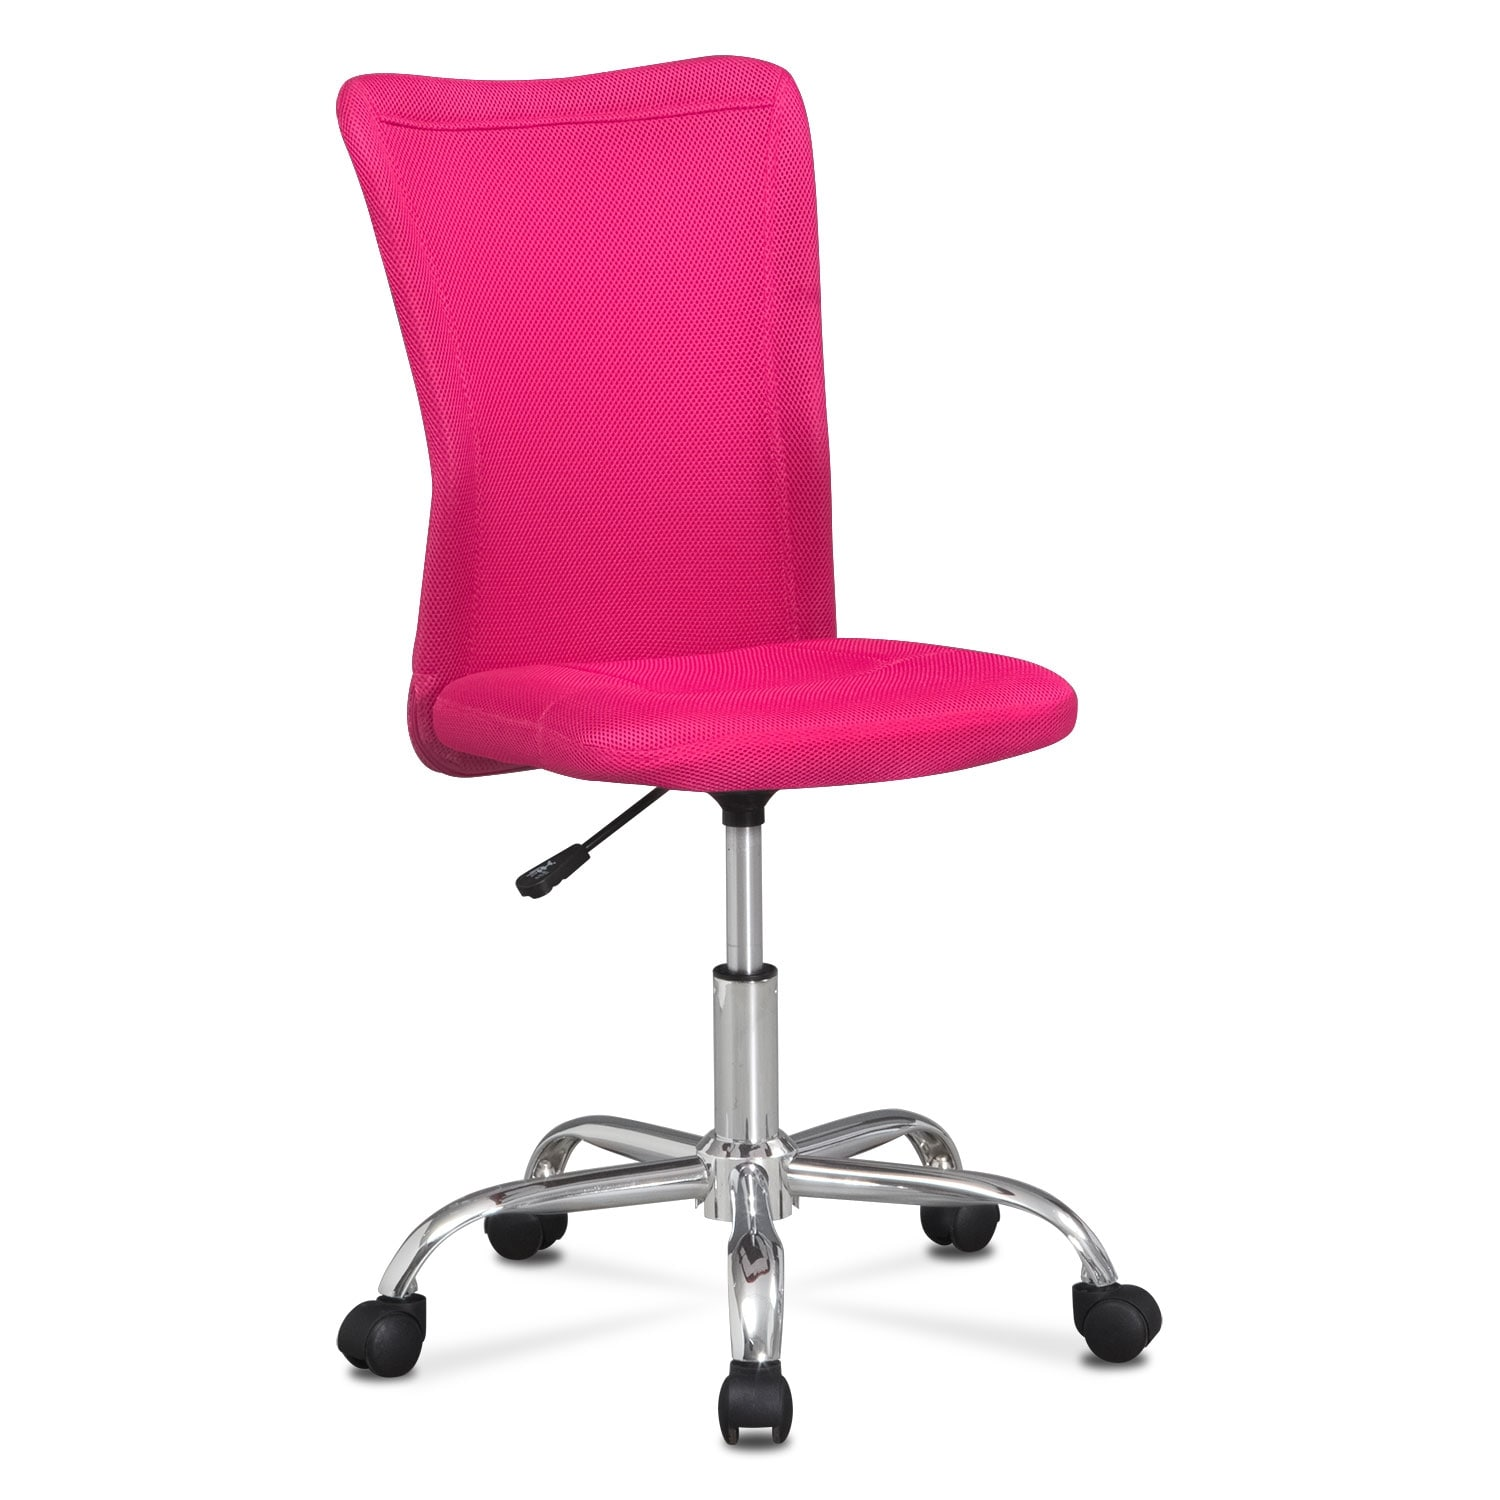 Mist Desk Chair Pink Value City Furniture